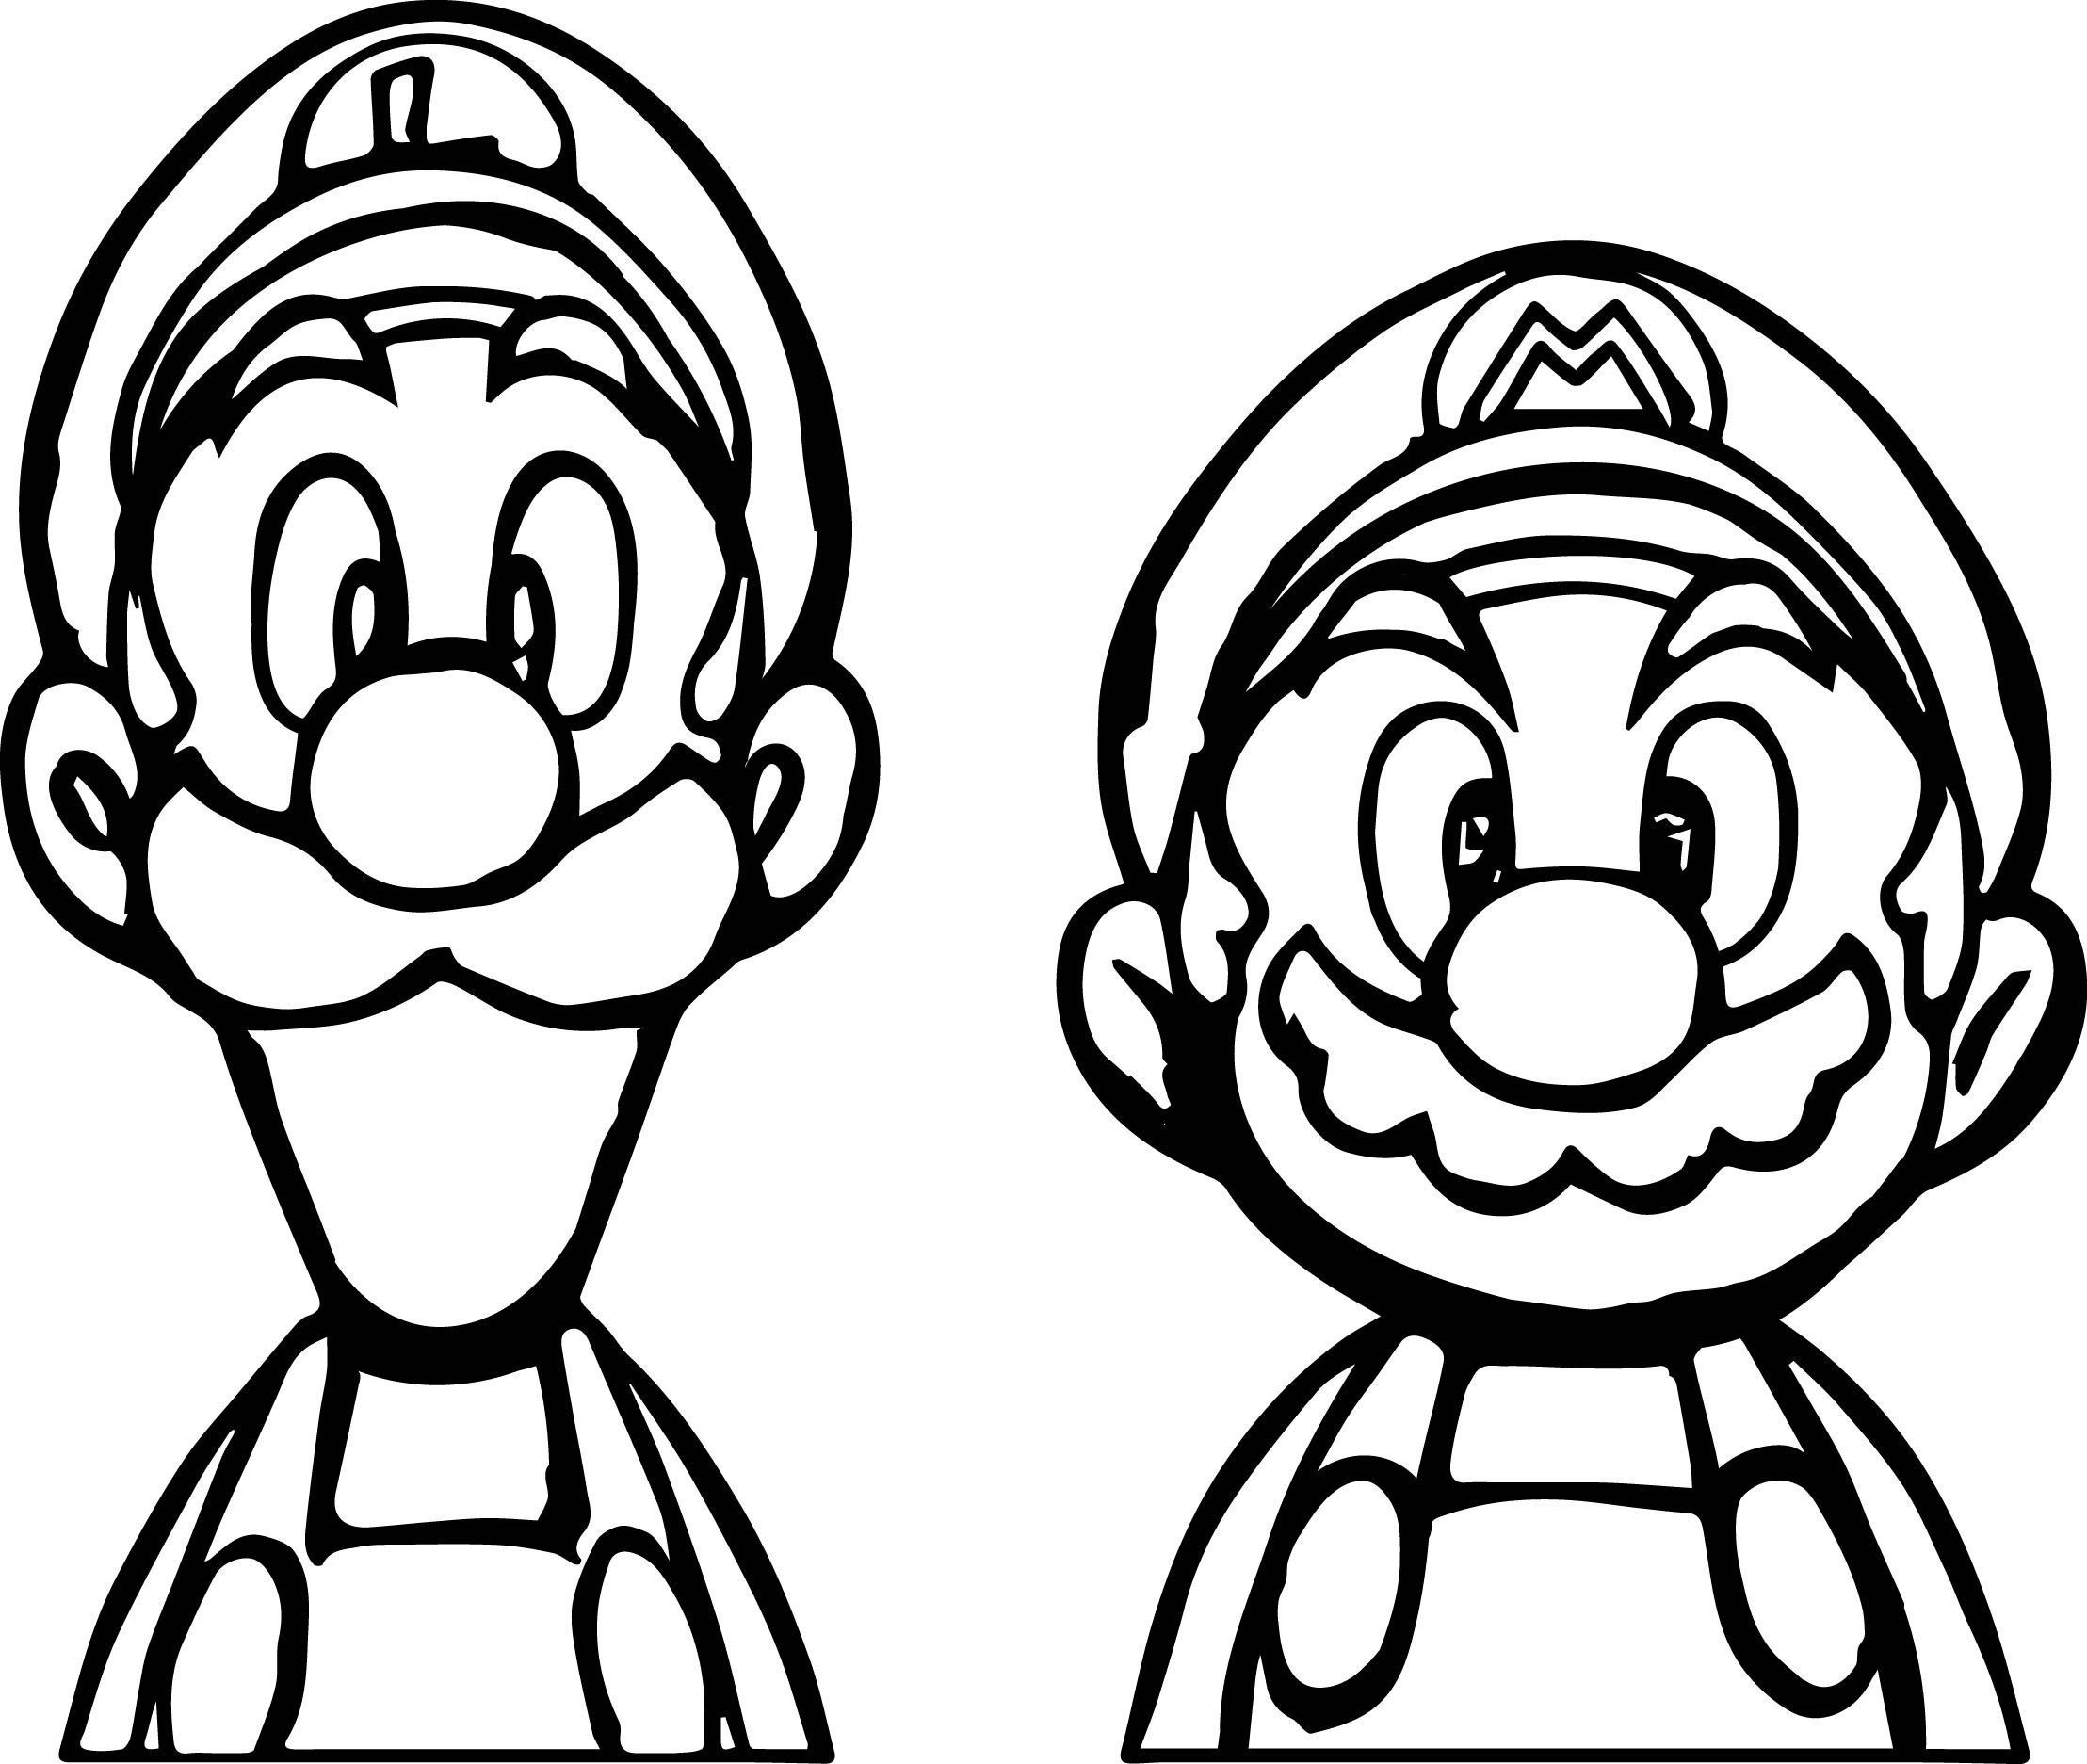 Super Mario Coloring Pages Lovely Super Mario Odyssey Coloring Pages Super Mario Coloring Pages Mario Coloring Pages Coloring Pages